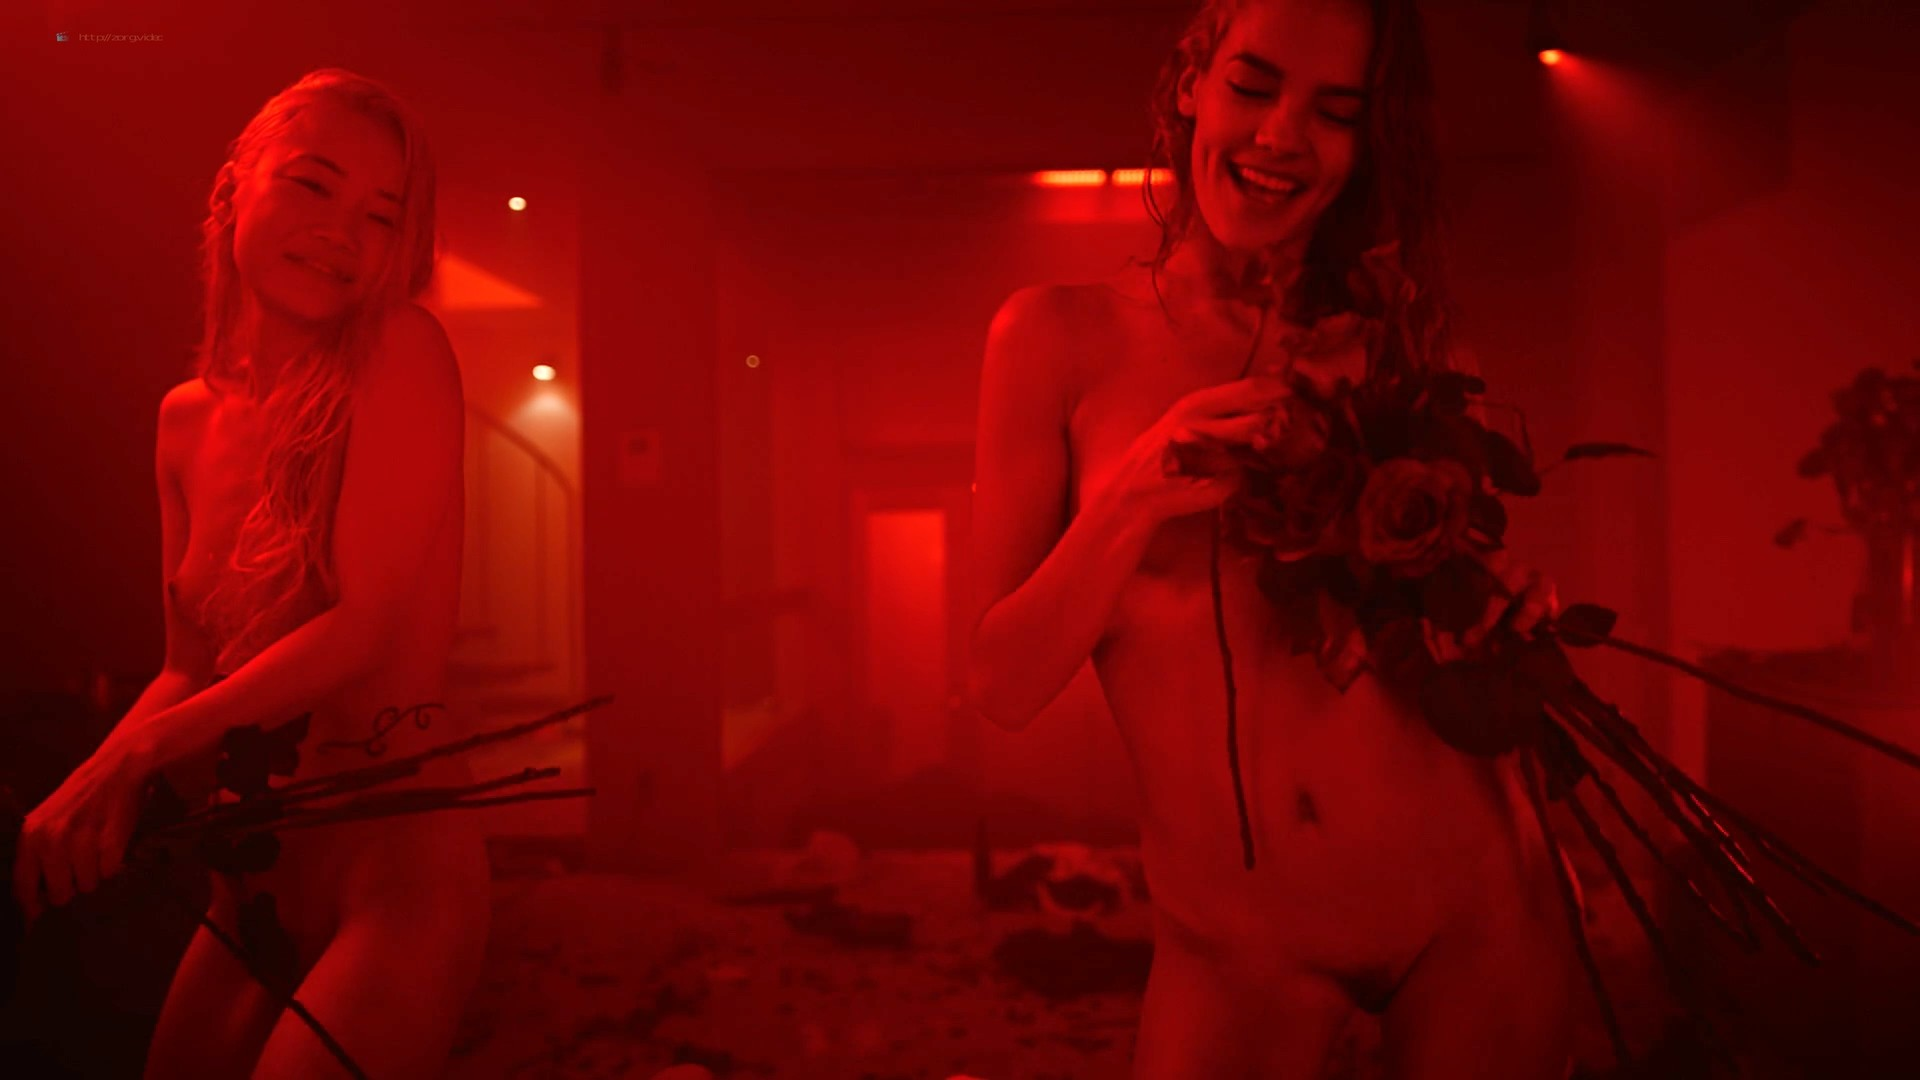 Haruka Abe nude full frontal Tao Okamoto and others nude too - Shes Just A Shadow (2019) BluRay (10)